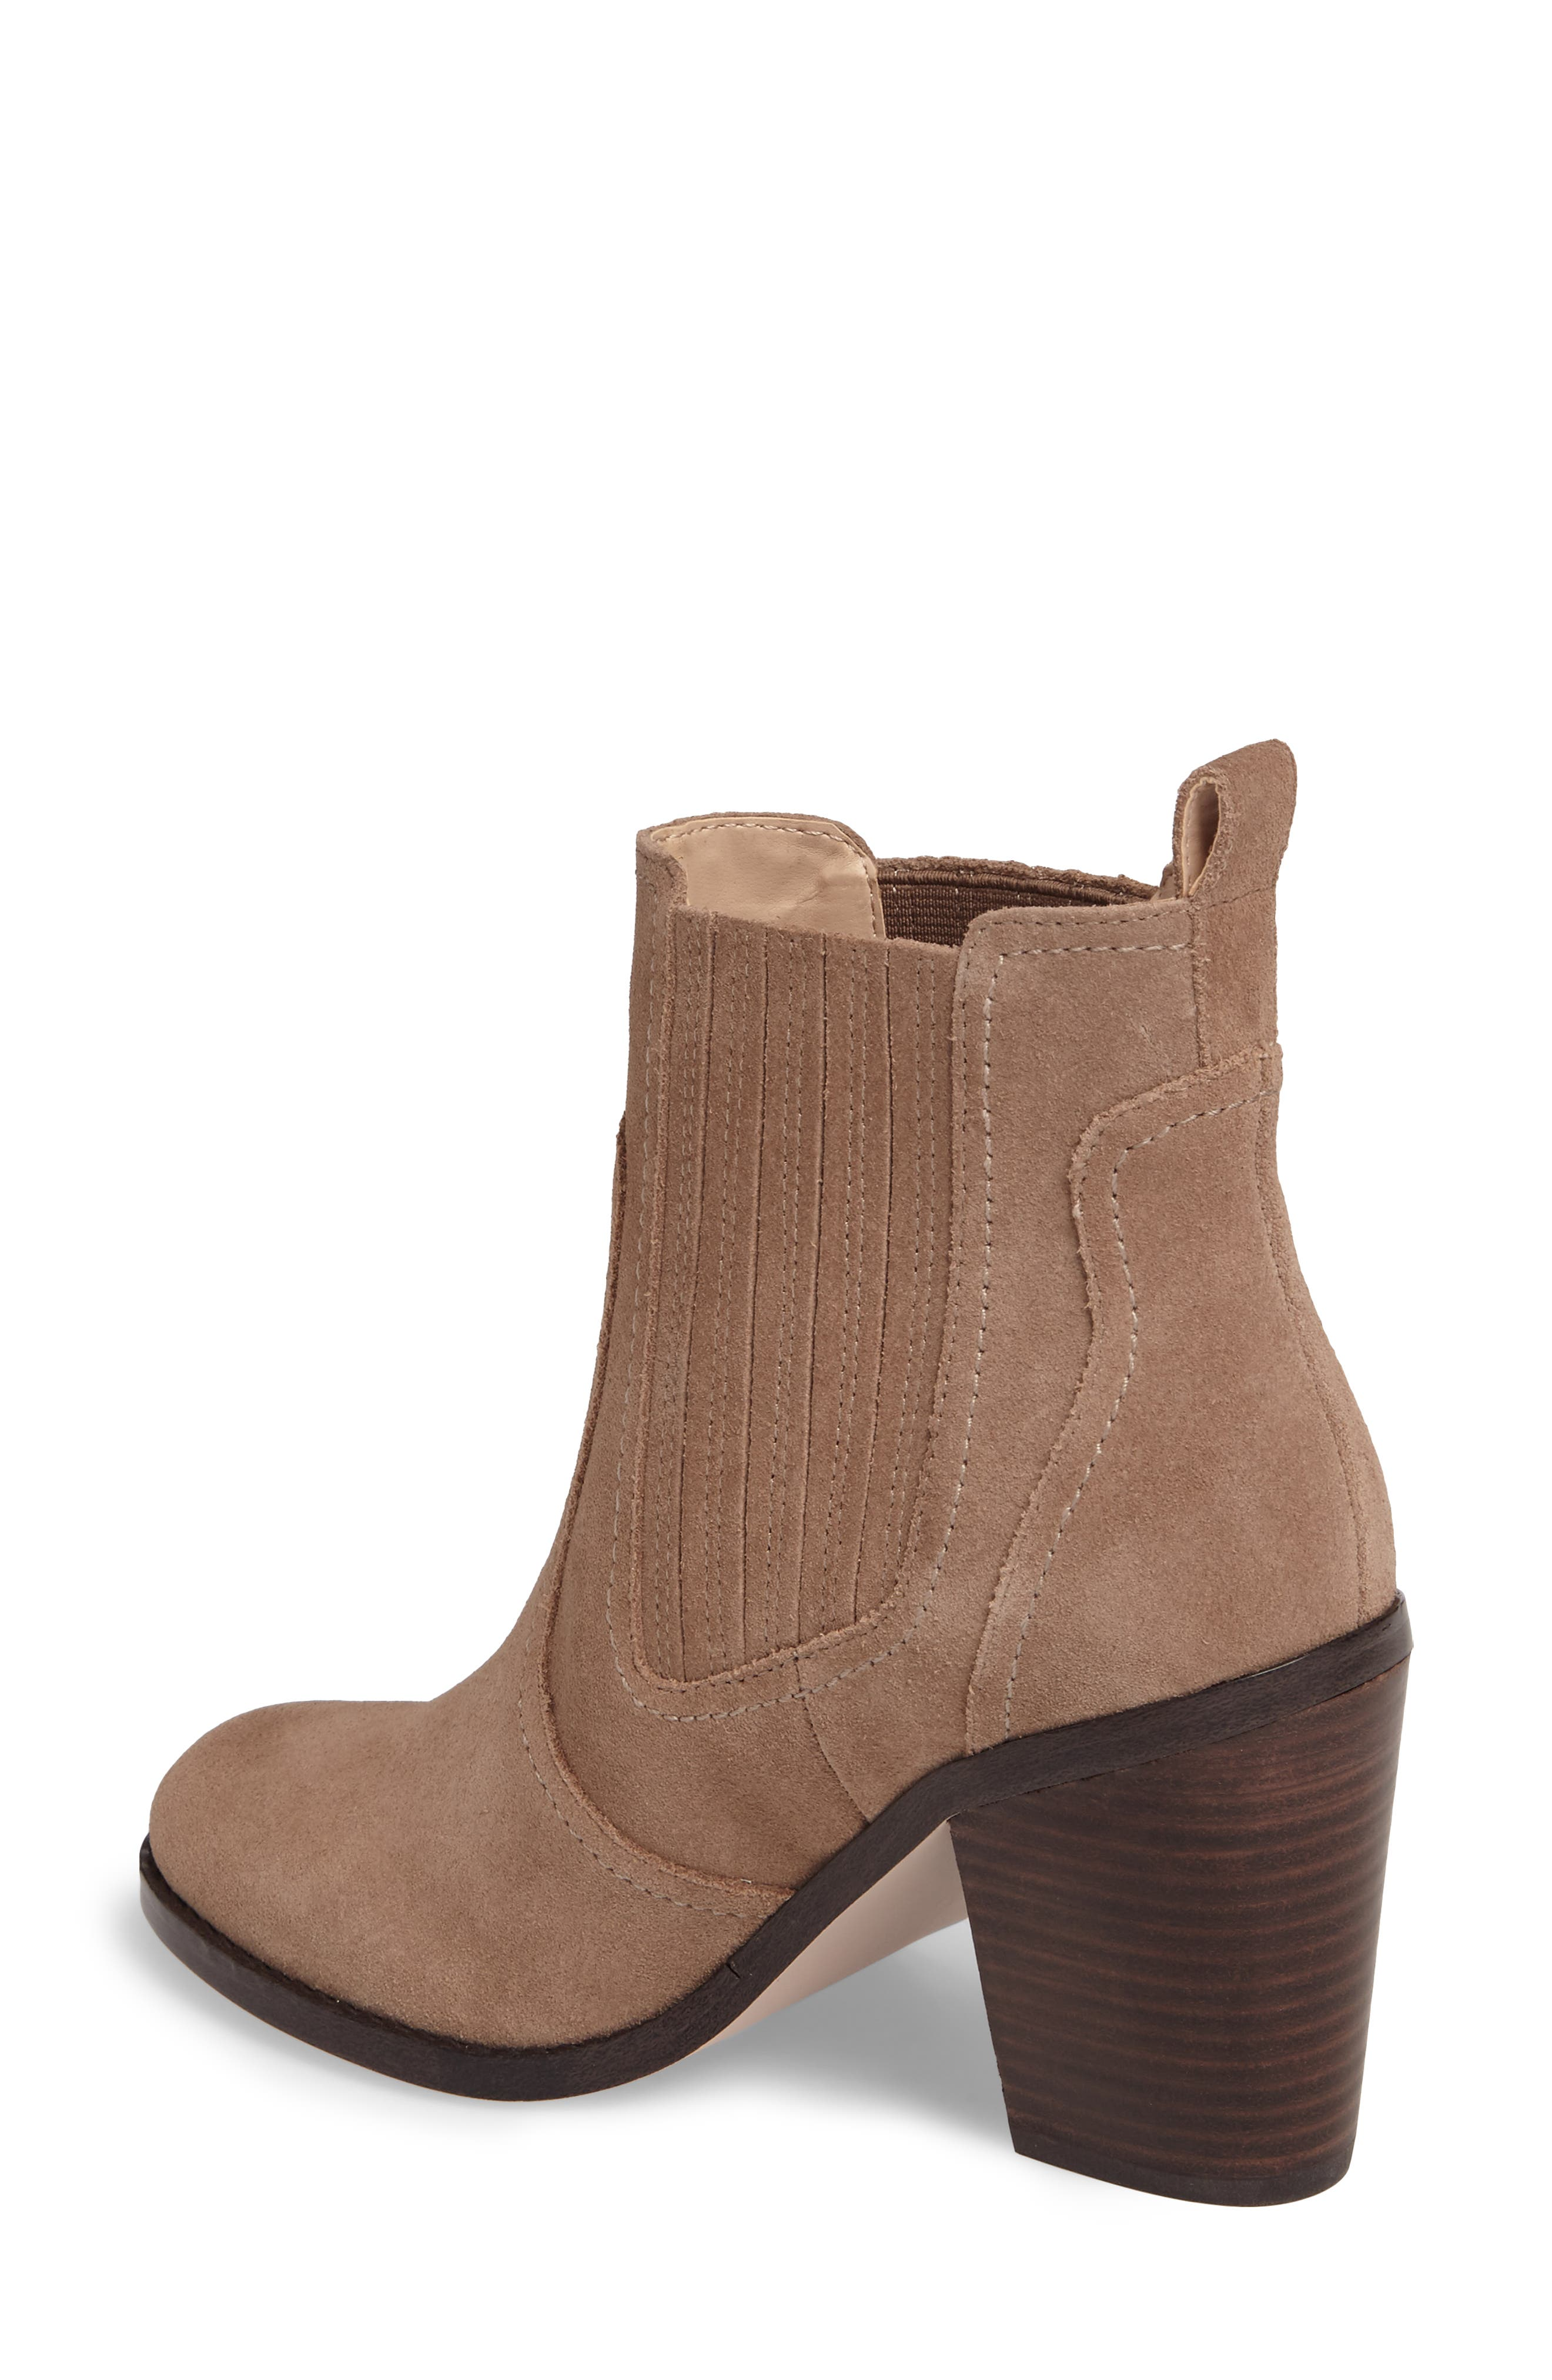 Harbor Bootie,                             Alternate thumbnail 2, color,                             Taupe